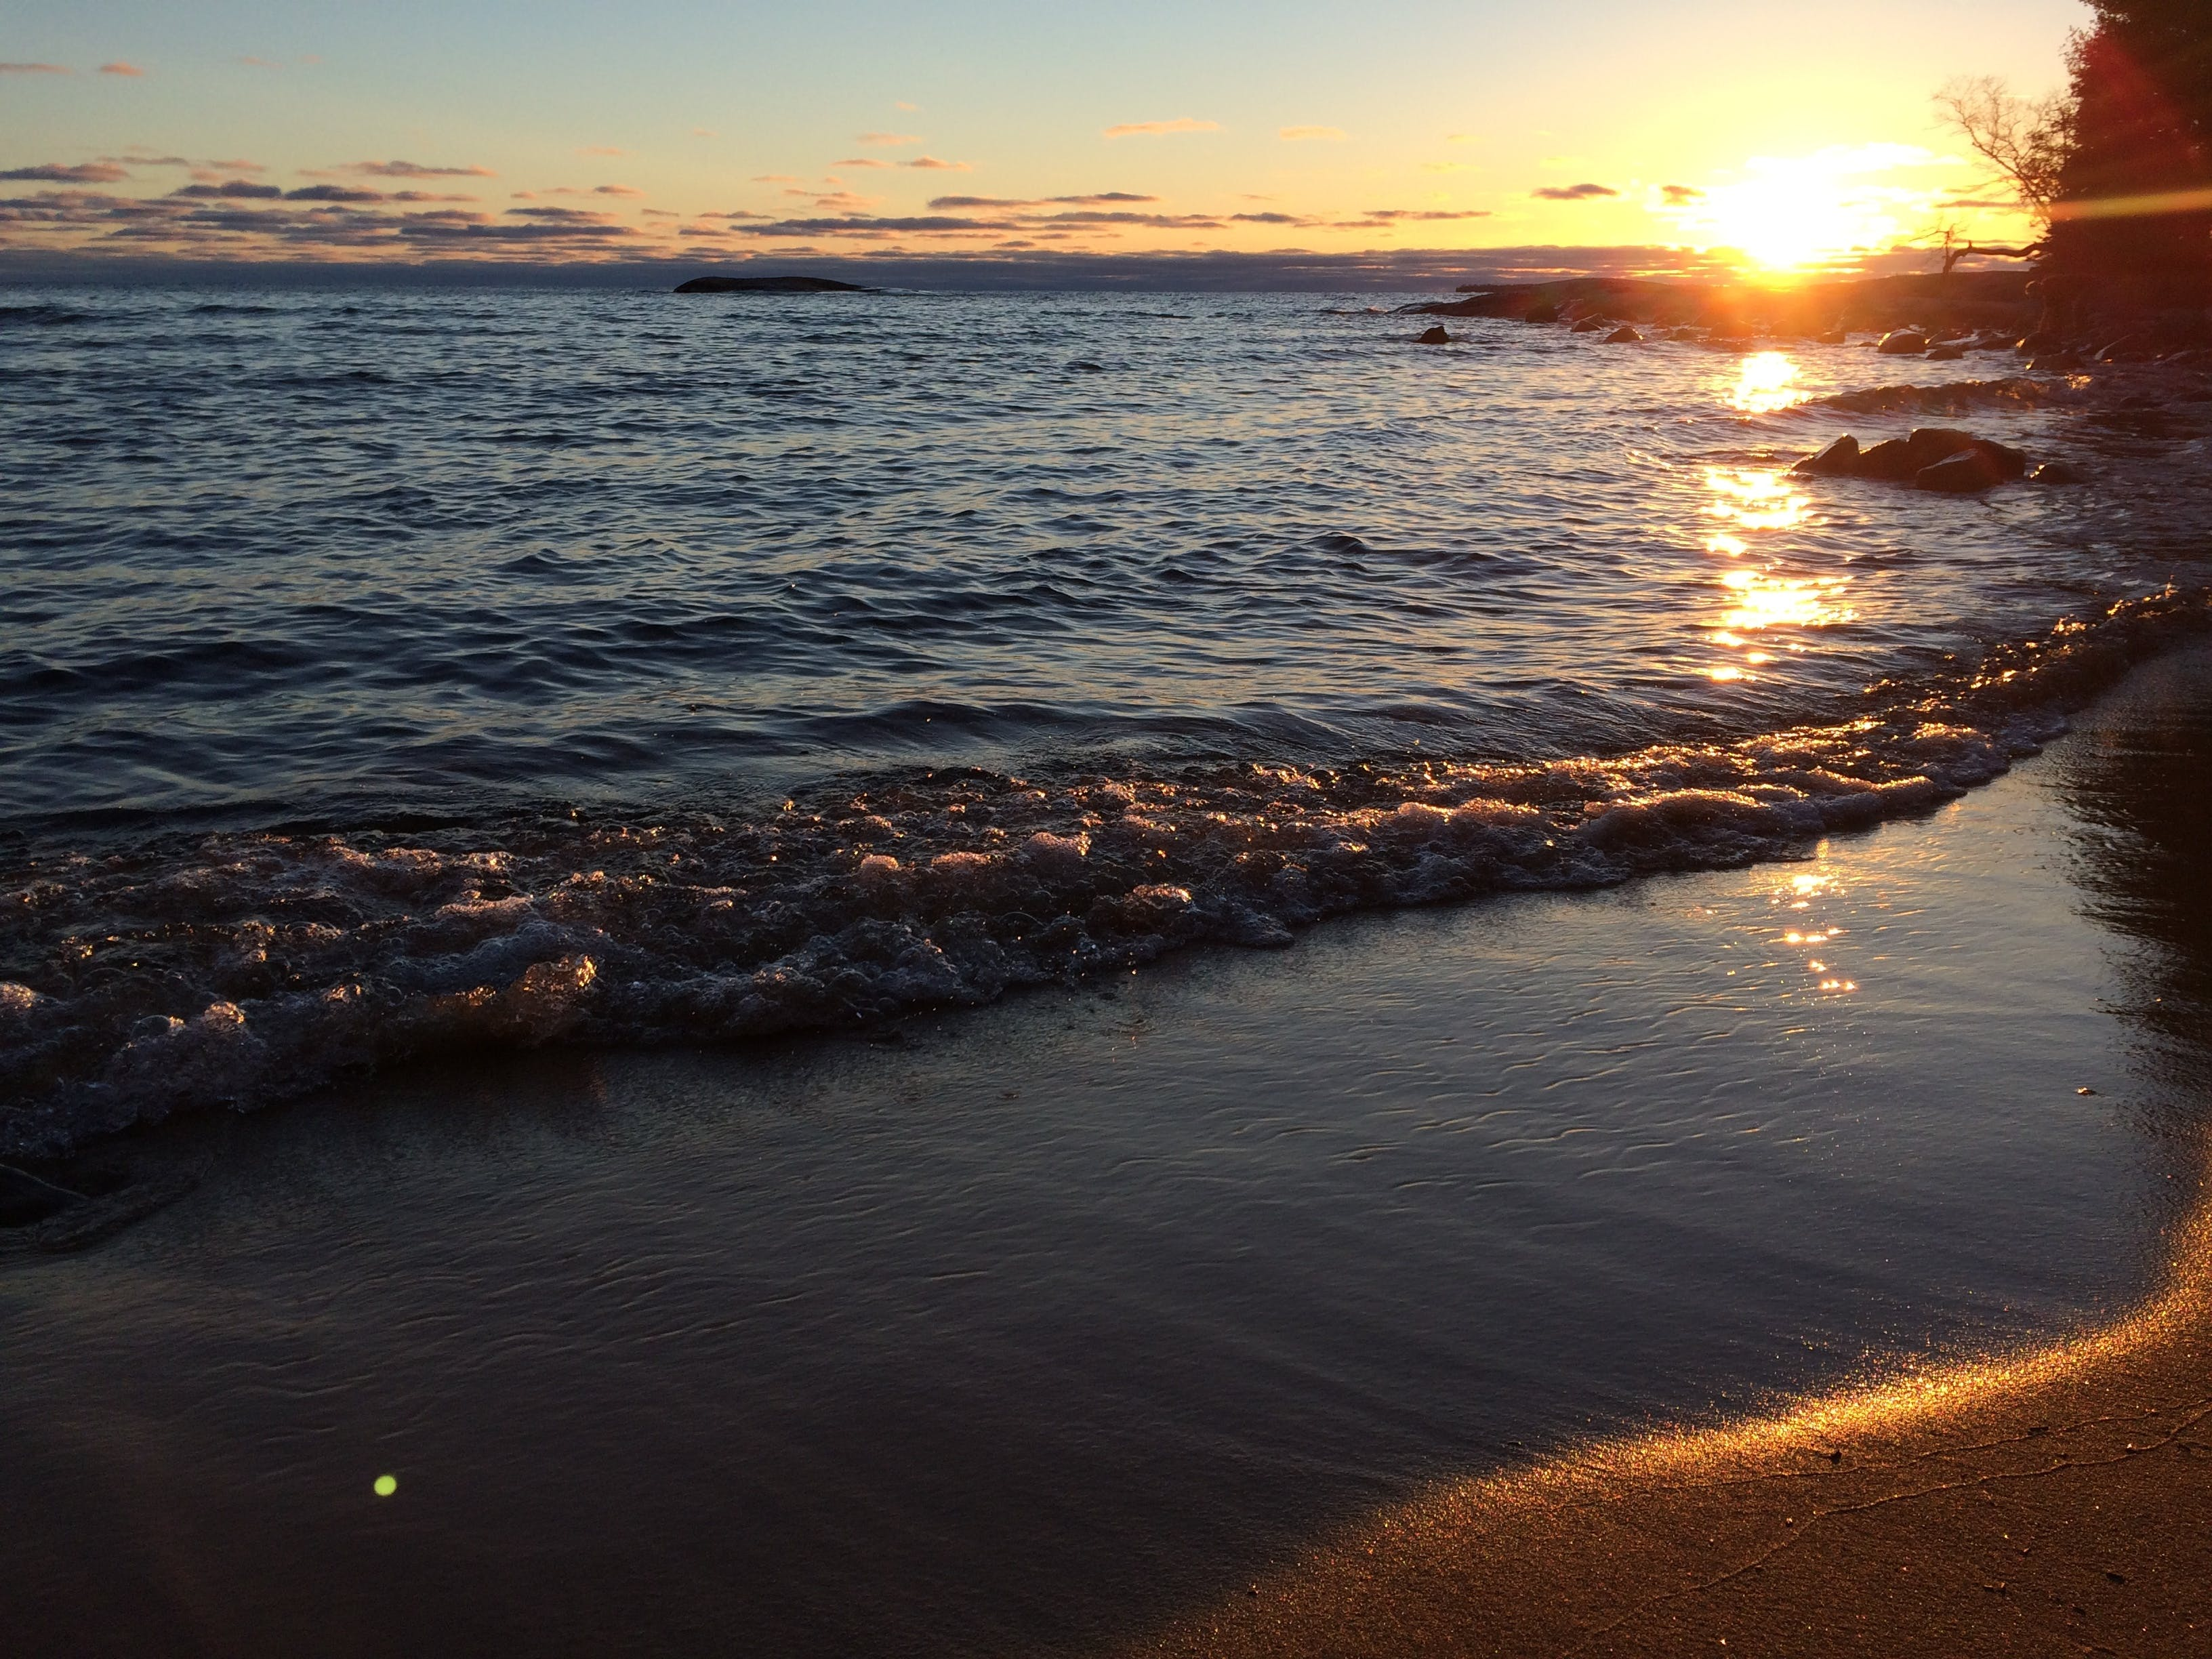 Free stock photo of discovercanada, lakesuperior, ontario, sunset beach